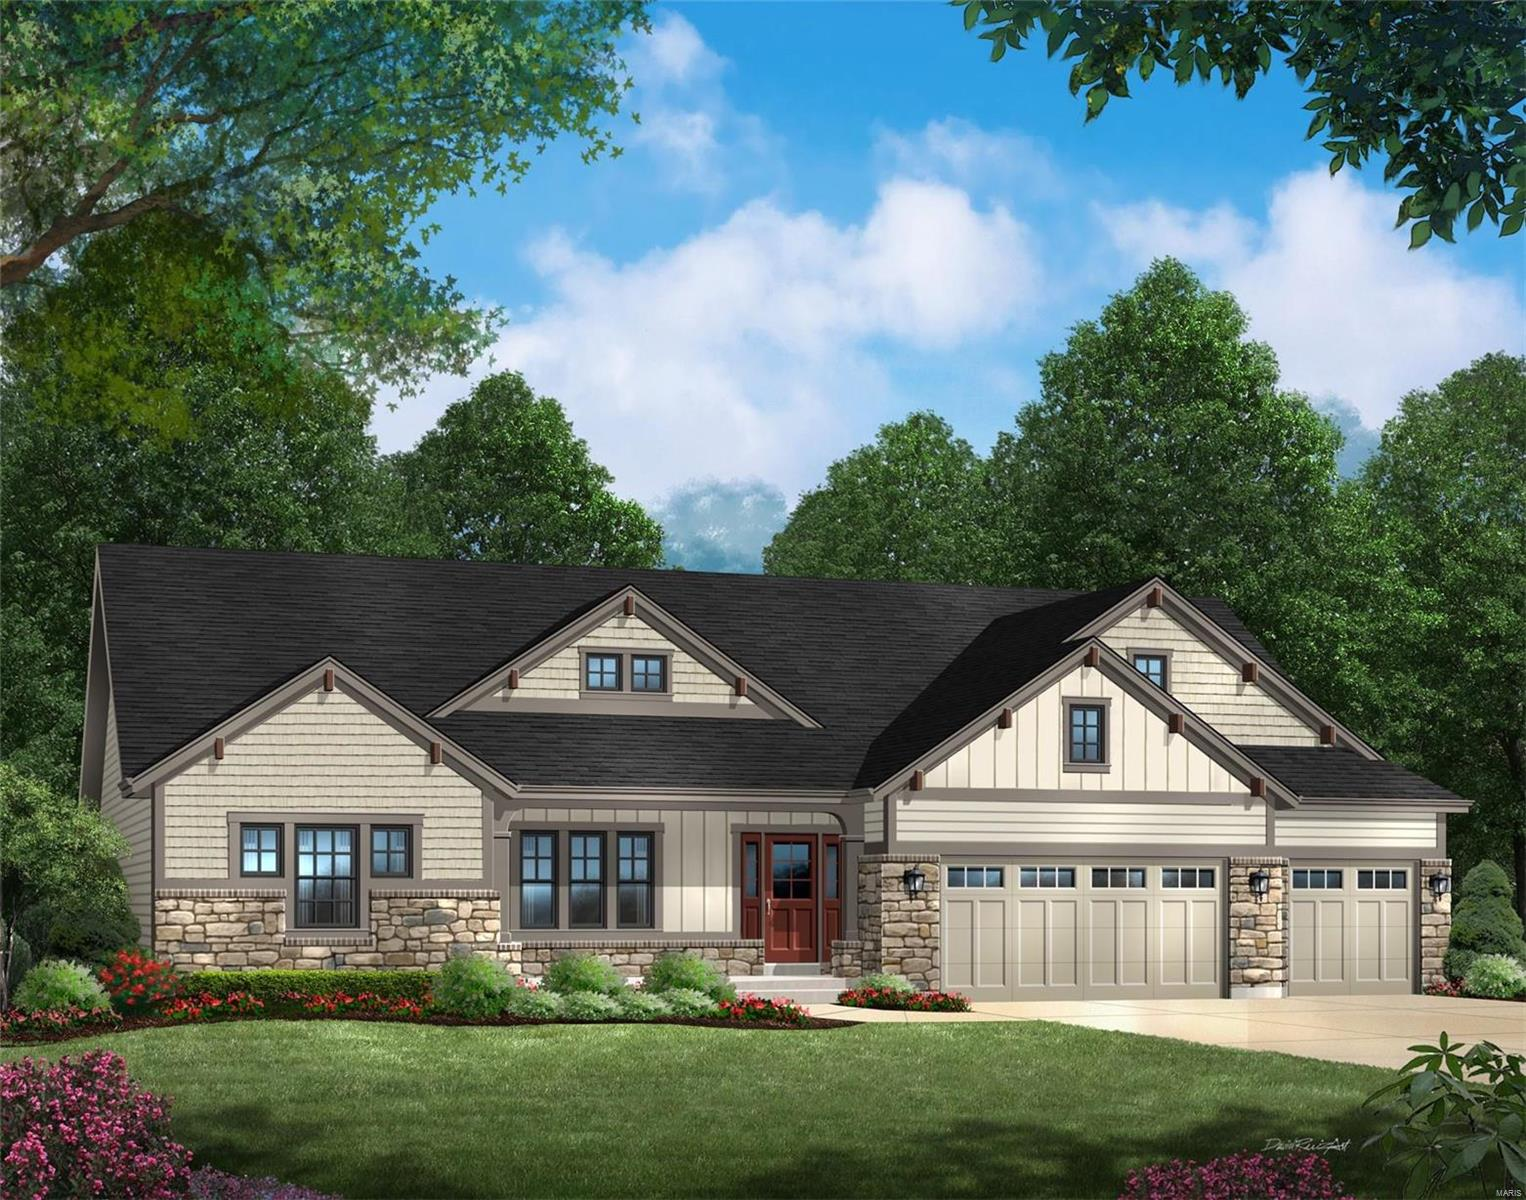 0 The LaSalle- Clarkson Meadows Property Photo - Ellisville, MO real estate listing